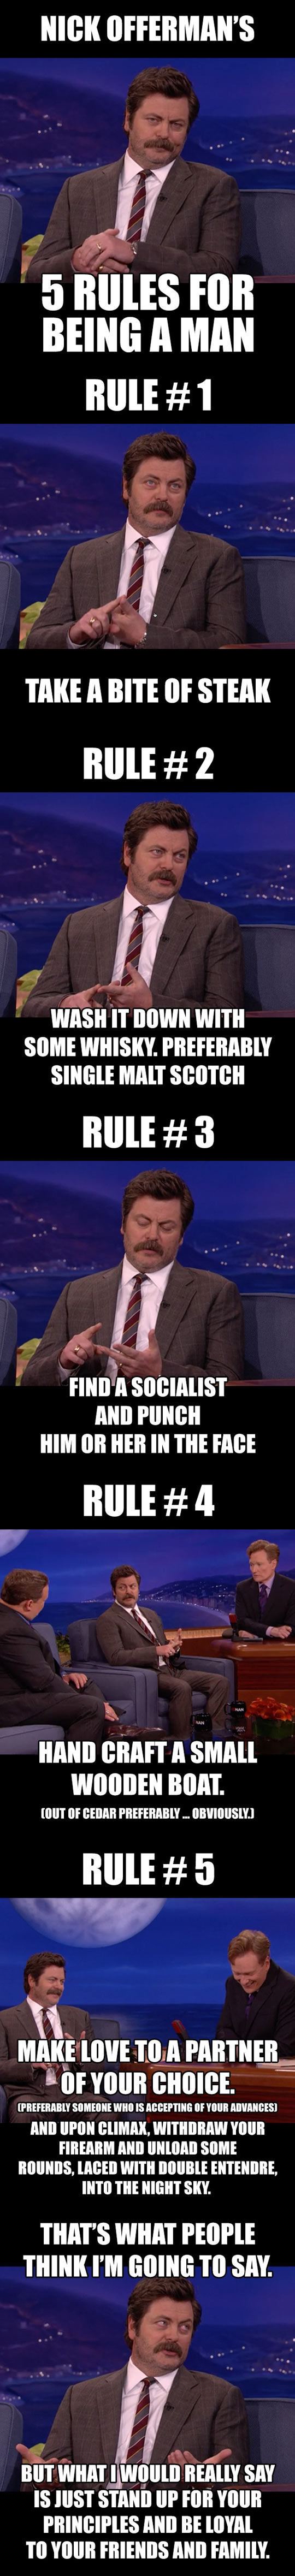 funny-Nick-Offerman-rules-being-man